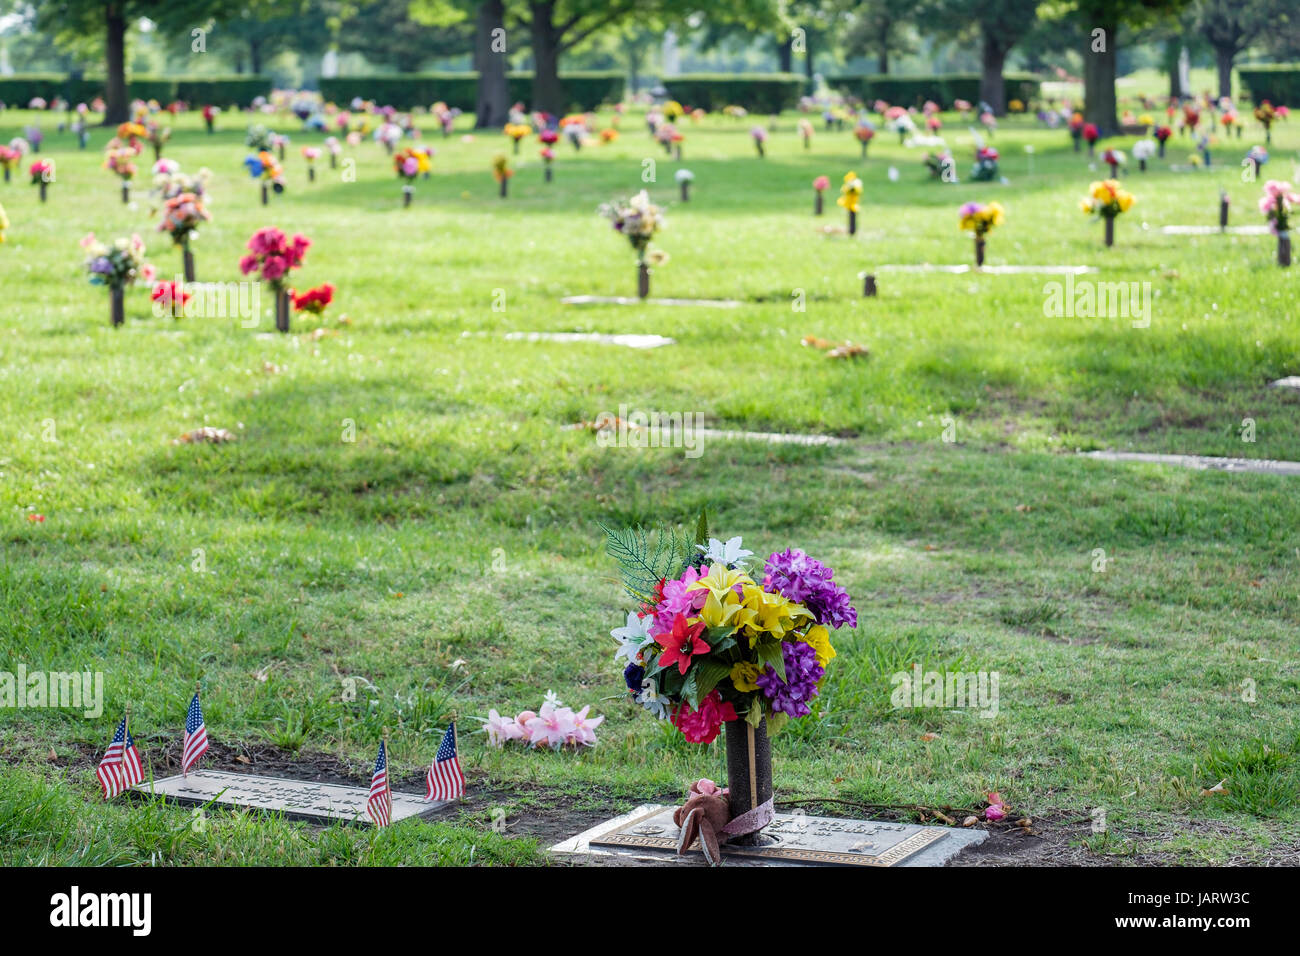 Gravesite floral decorations honoring the dead on Memorial Day in a cemetary in Wichita, Kansas, USA. - Stock Image